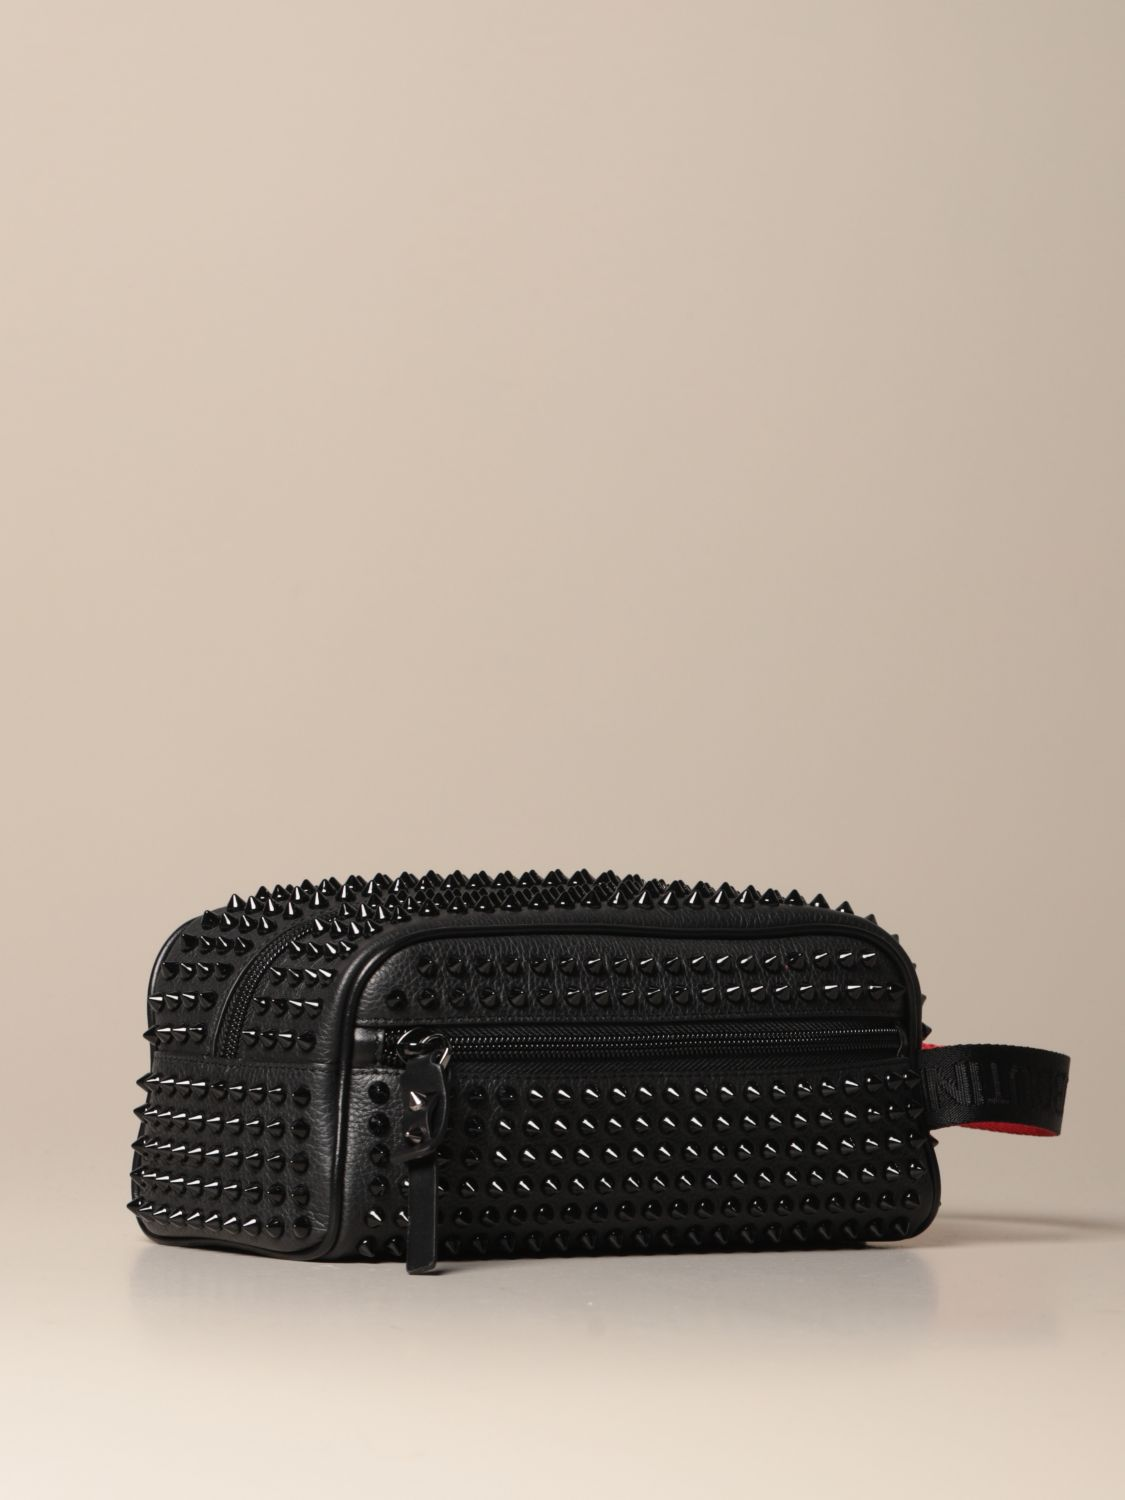 Bags Christian Louboutin: Blaster Christian Louboutin beauty case in leather with studs black 2